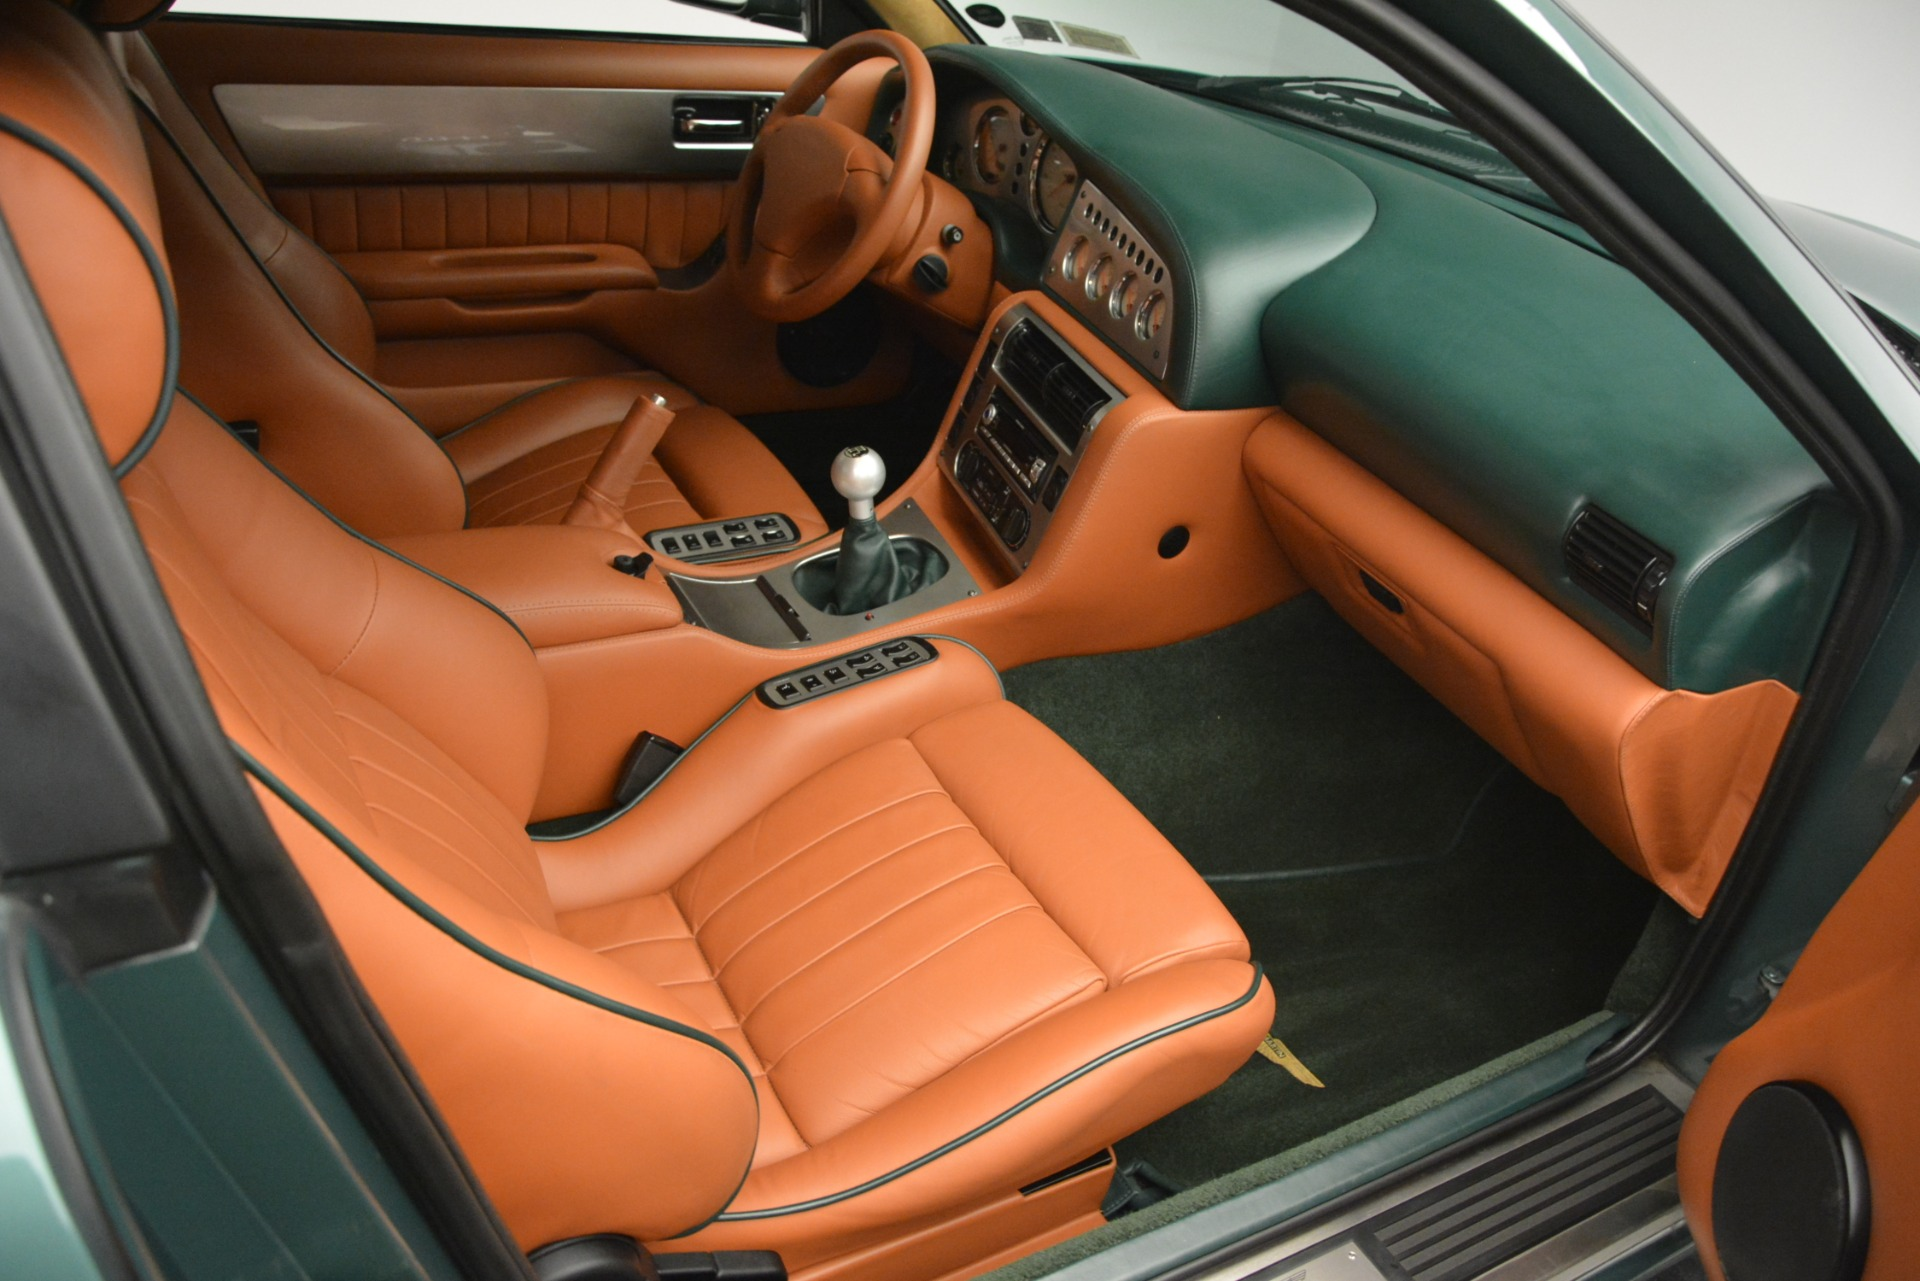 Used 1999 Aston Martin V8 Vantage Le Mans V600 Coupe For Sale In Westport, CT 2789_p25